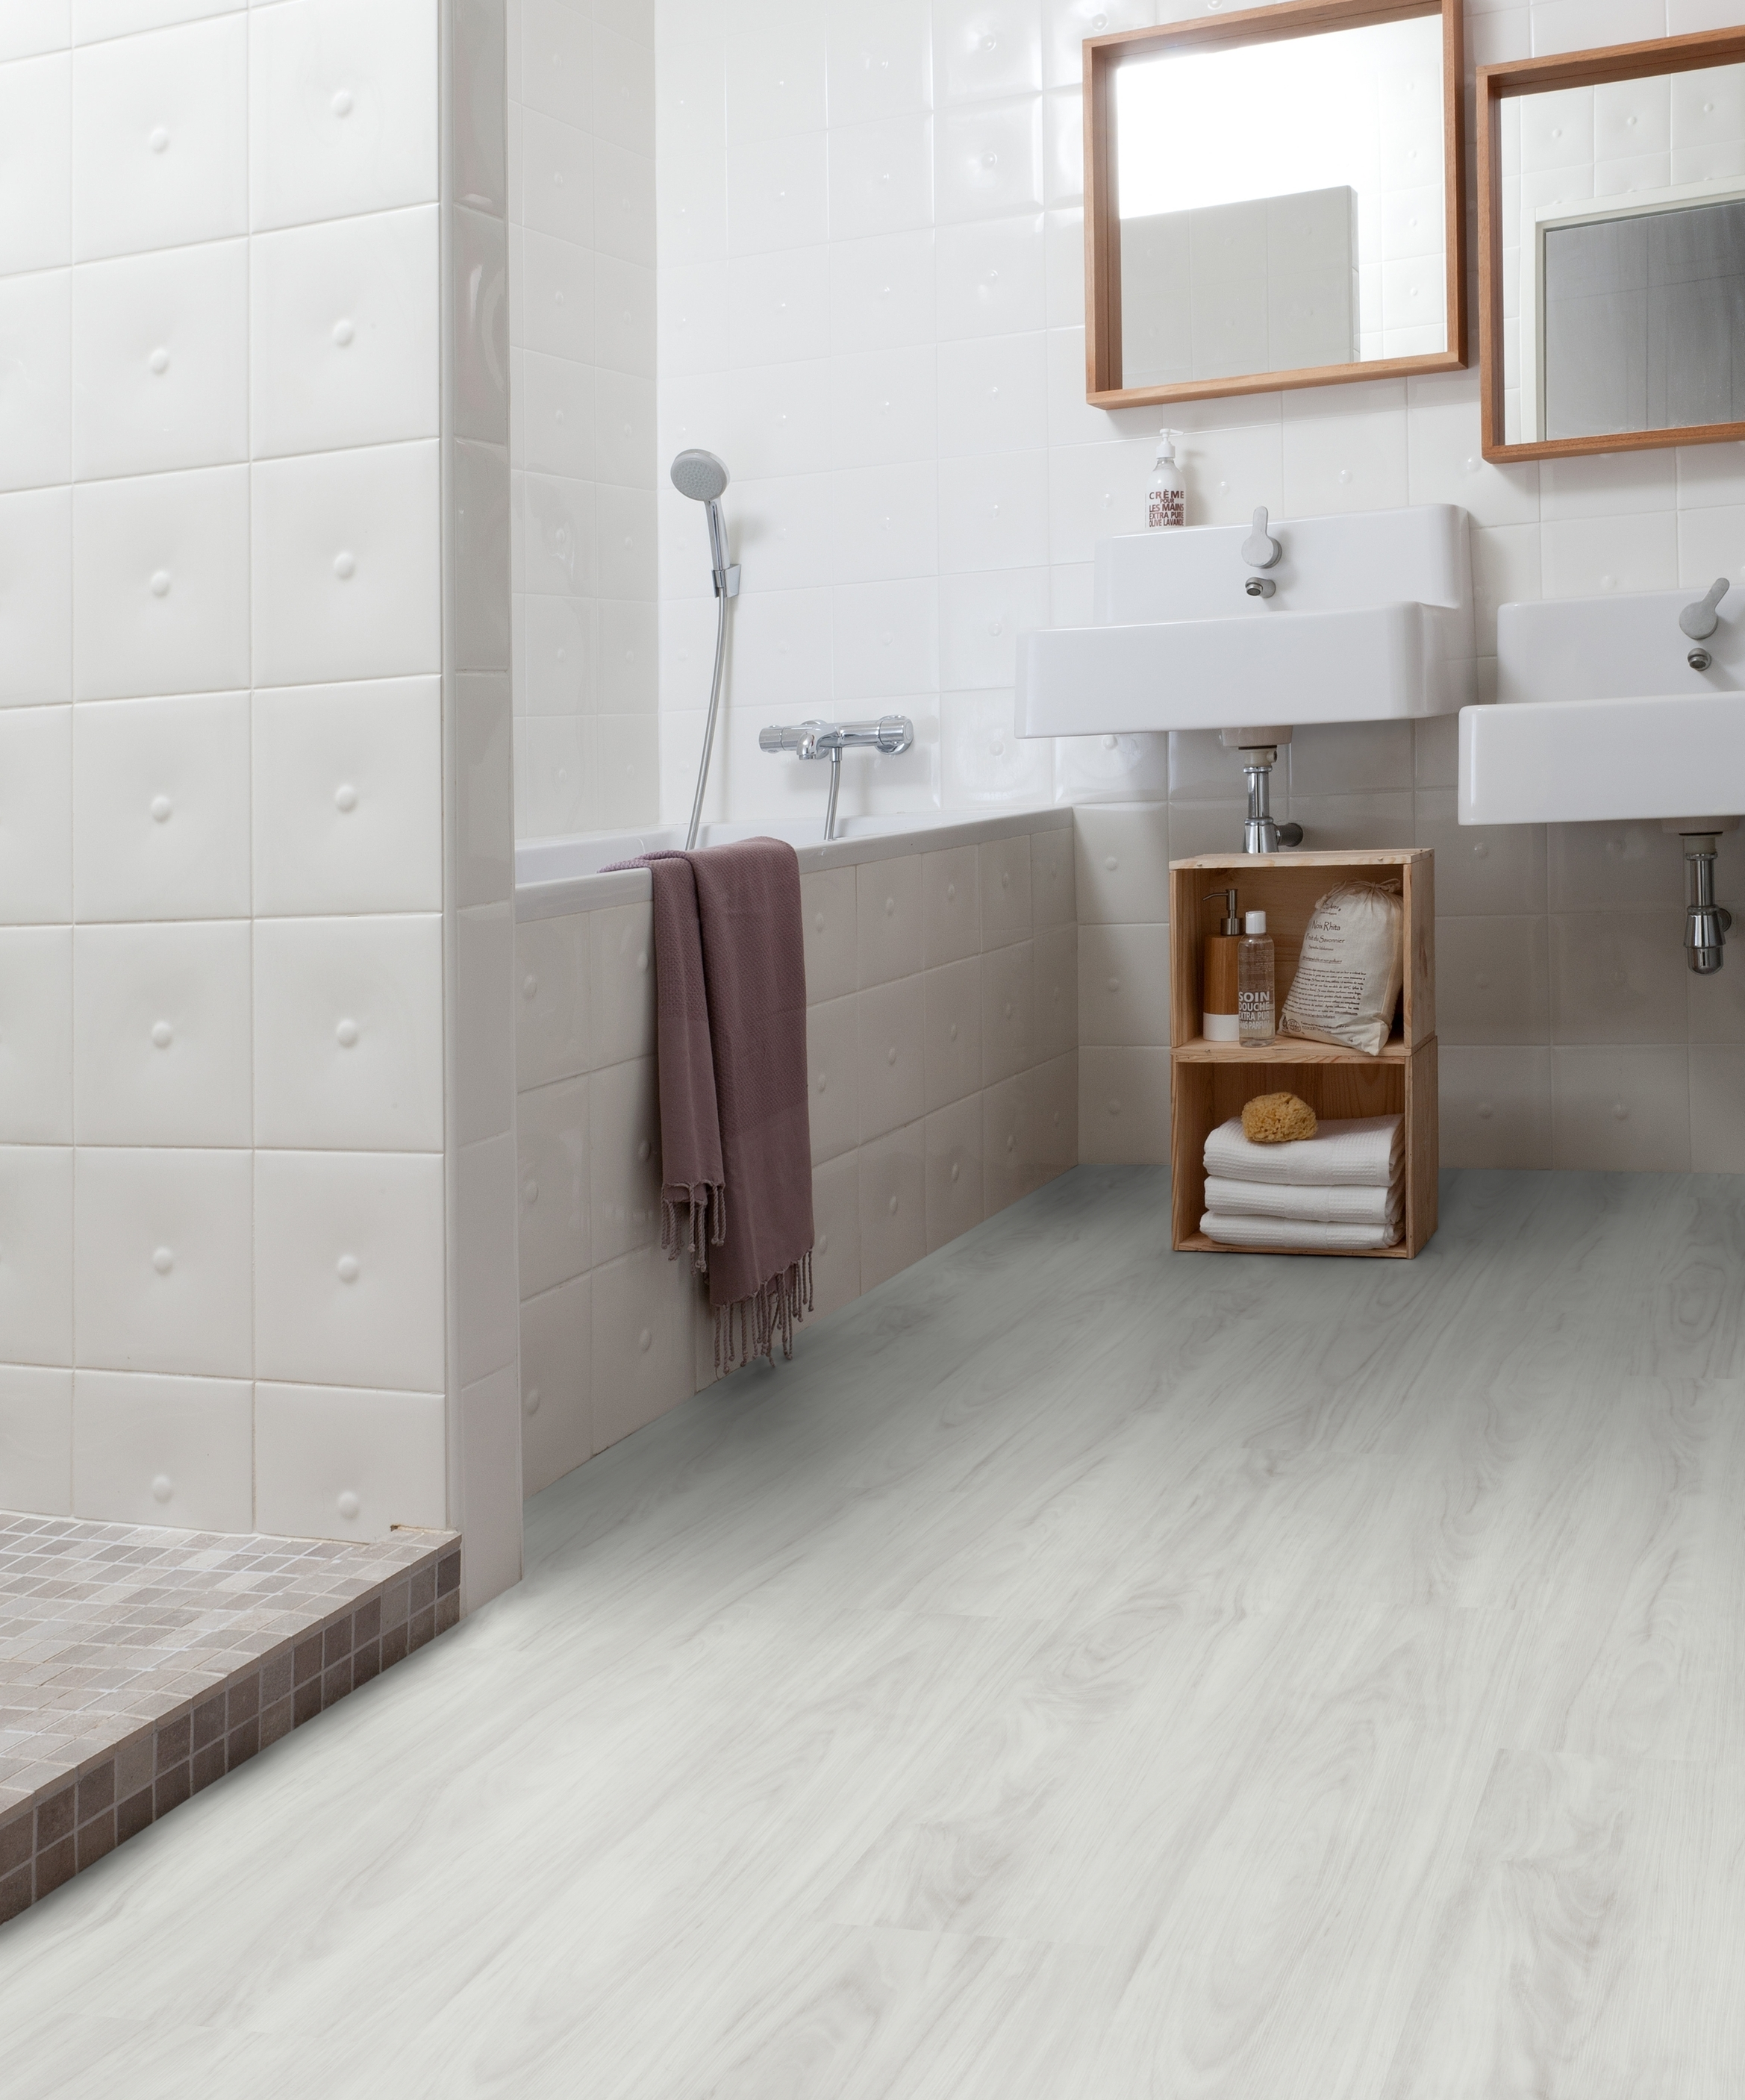 Bathroom floor covering gerflor slip resistant coverings for bathrooms and kitchens for Slip resistant bathroom flooring